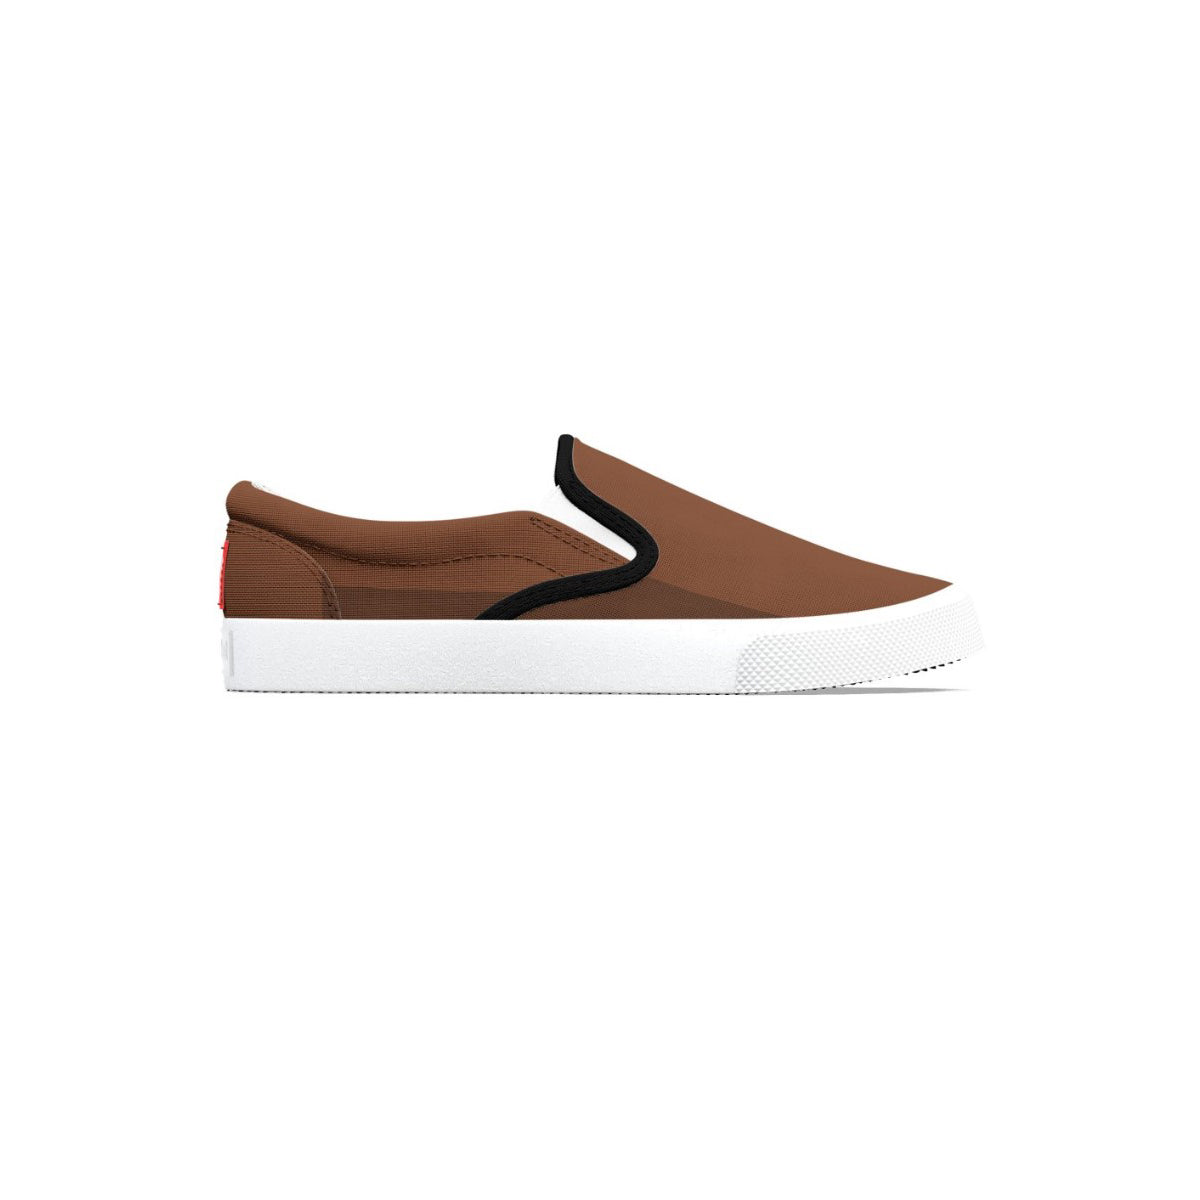 All Shades Slip Ons by Squared Limited